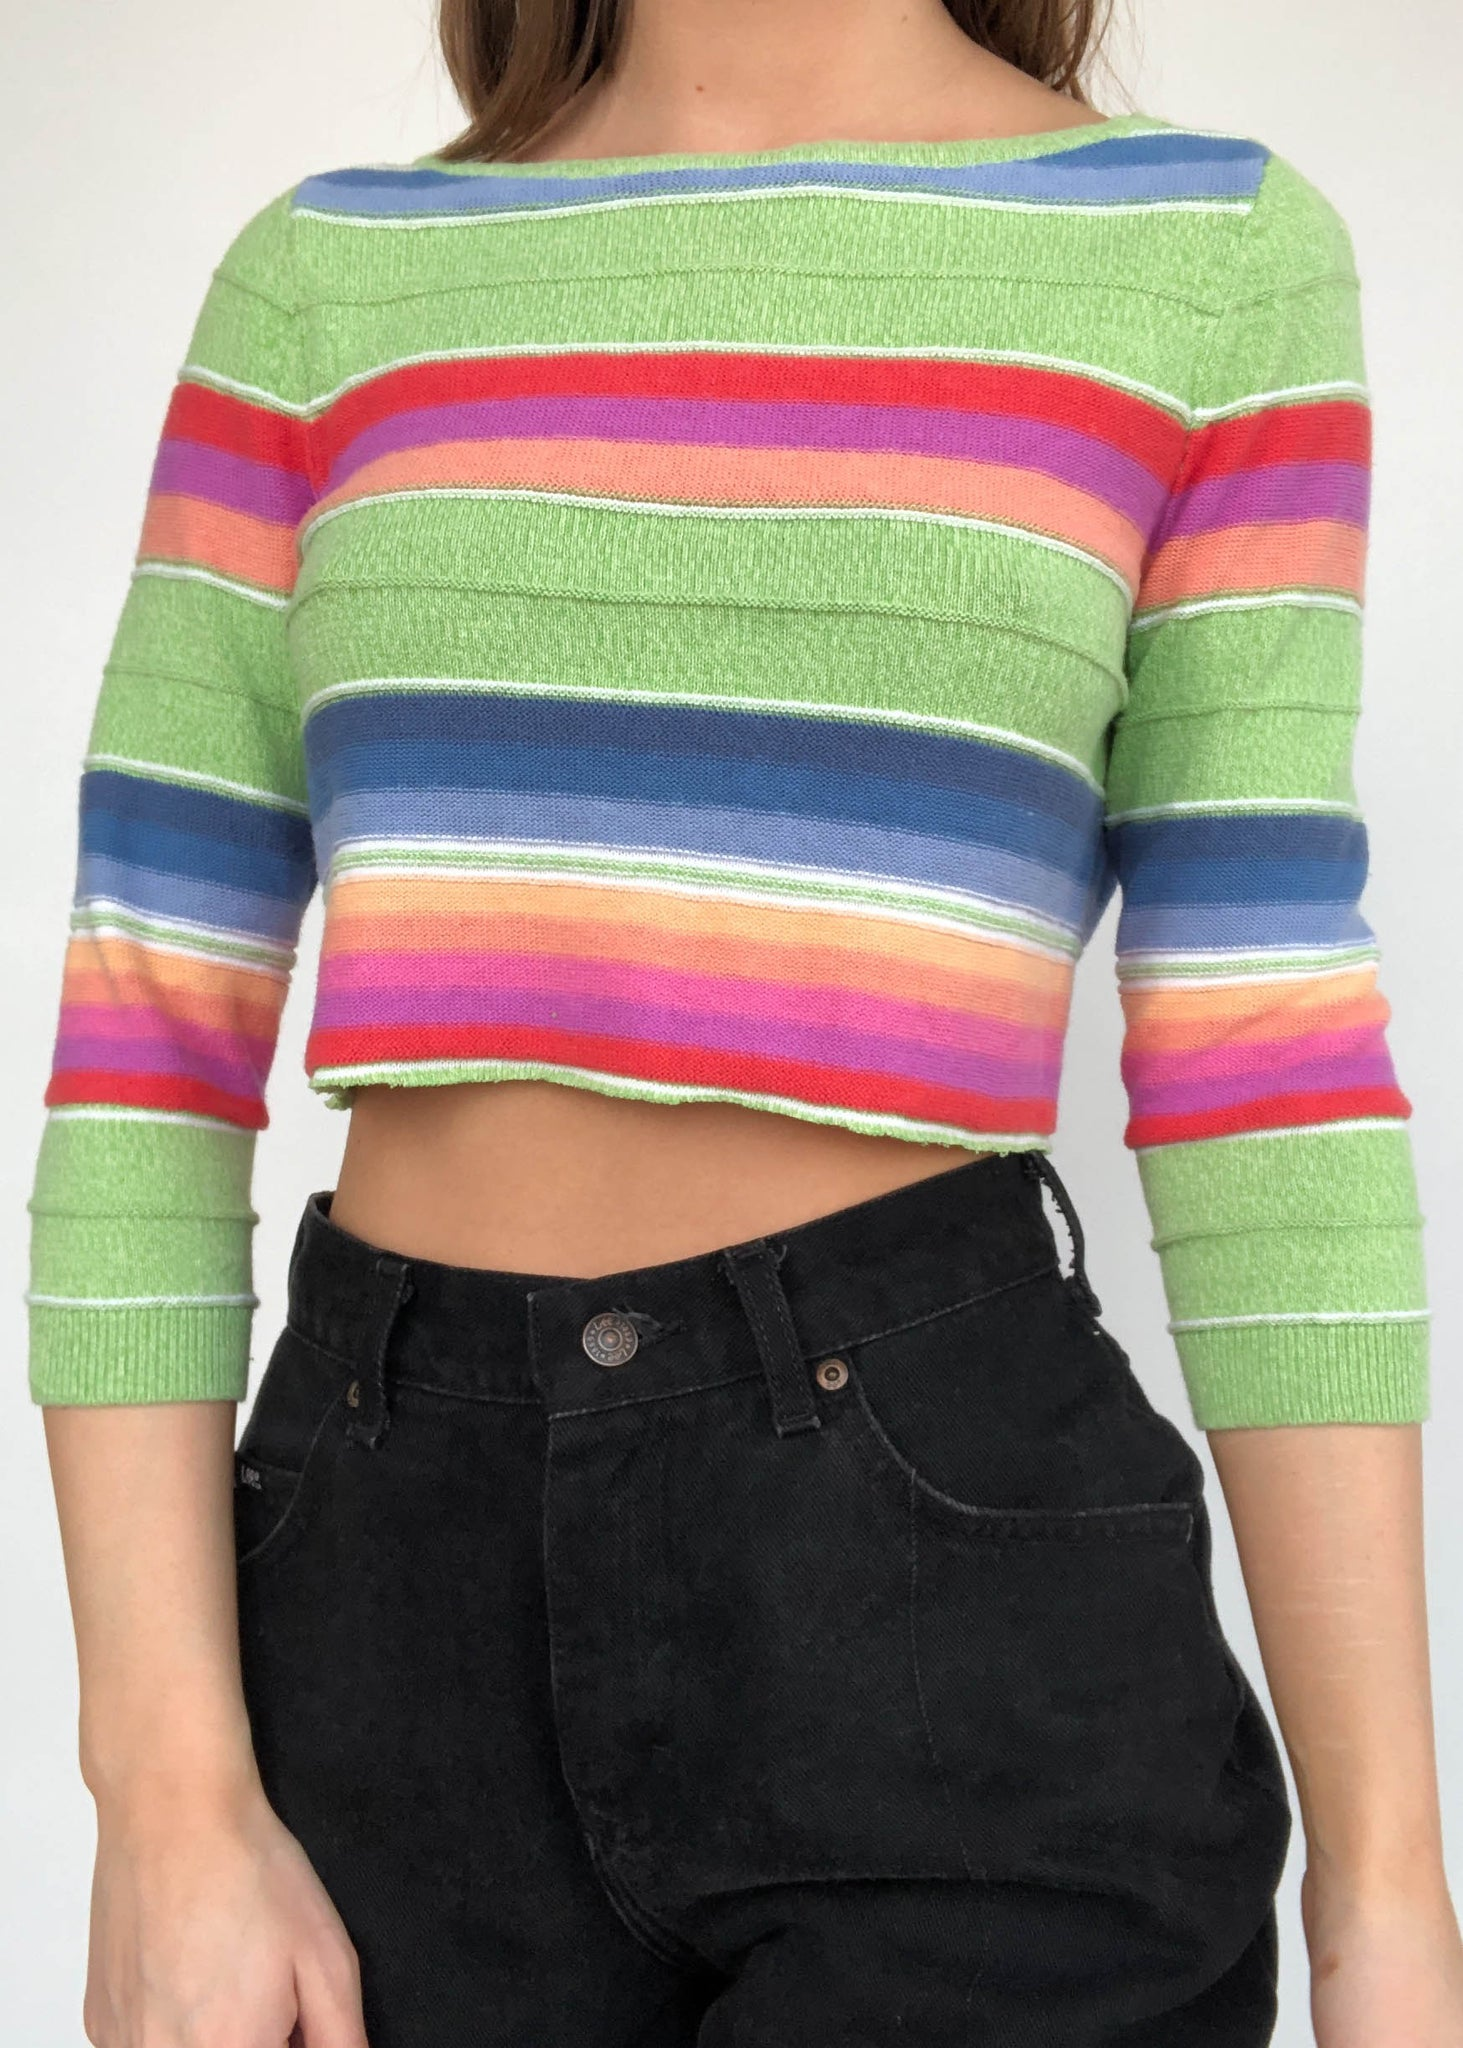 Junebug Striped Knit